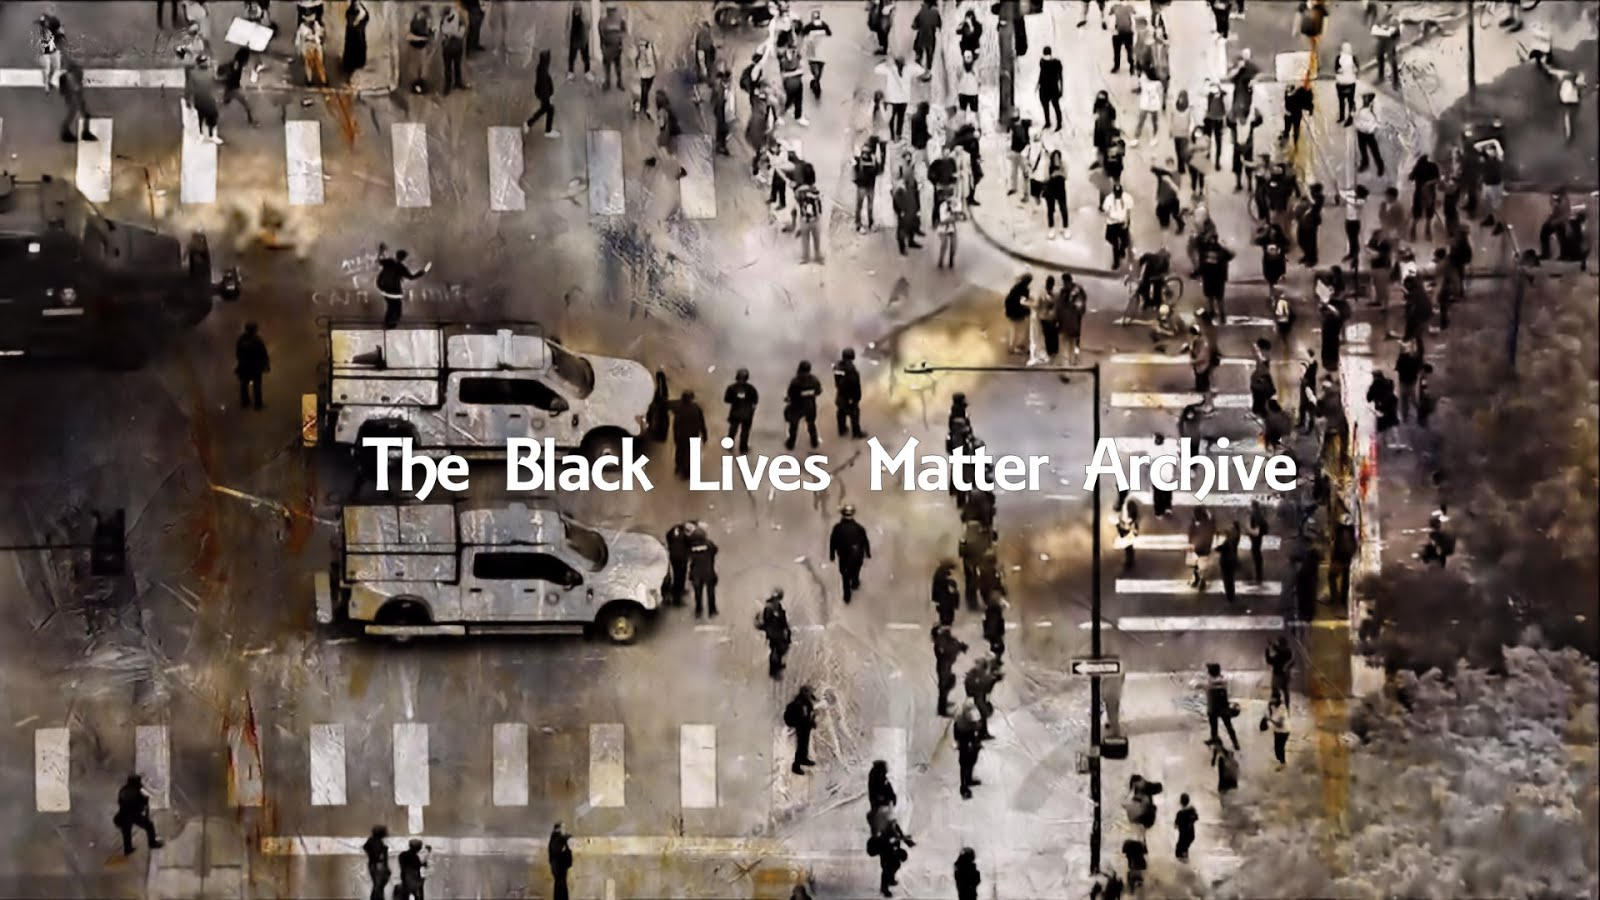 The Black Lives Matter Archive